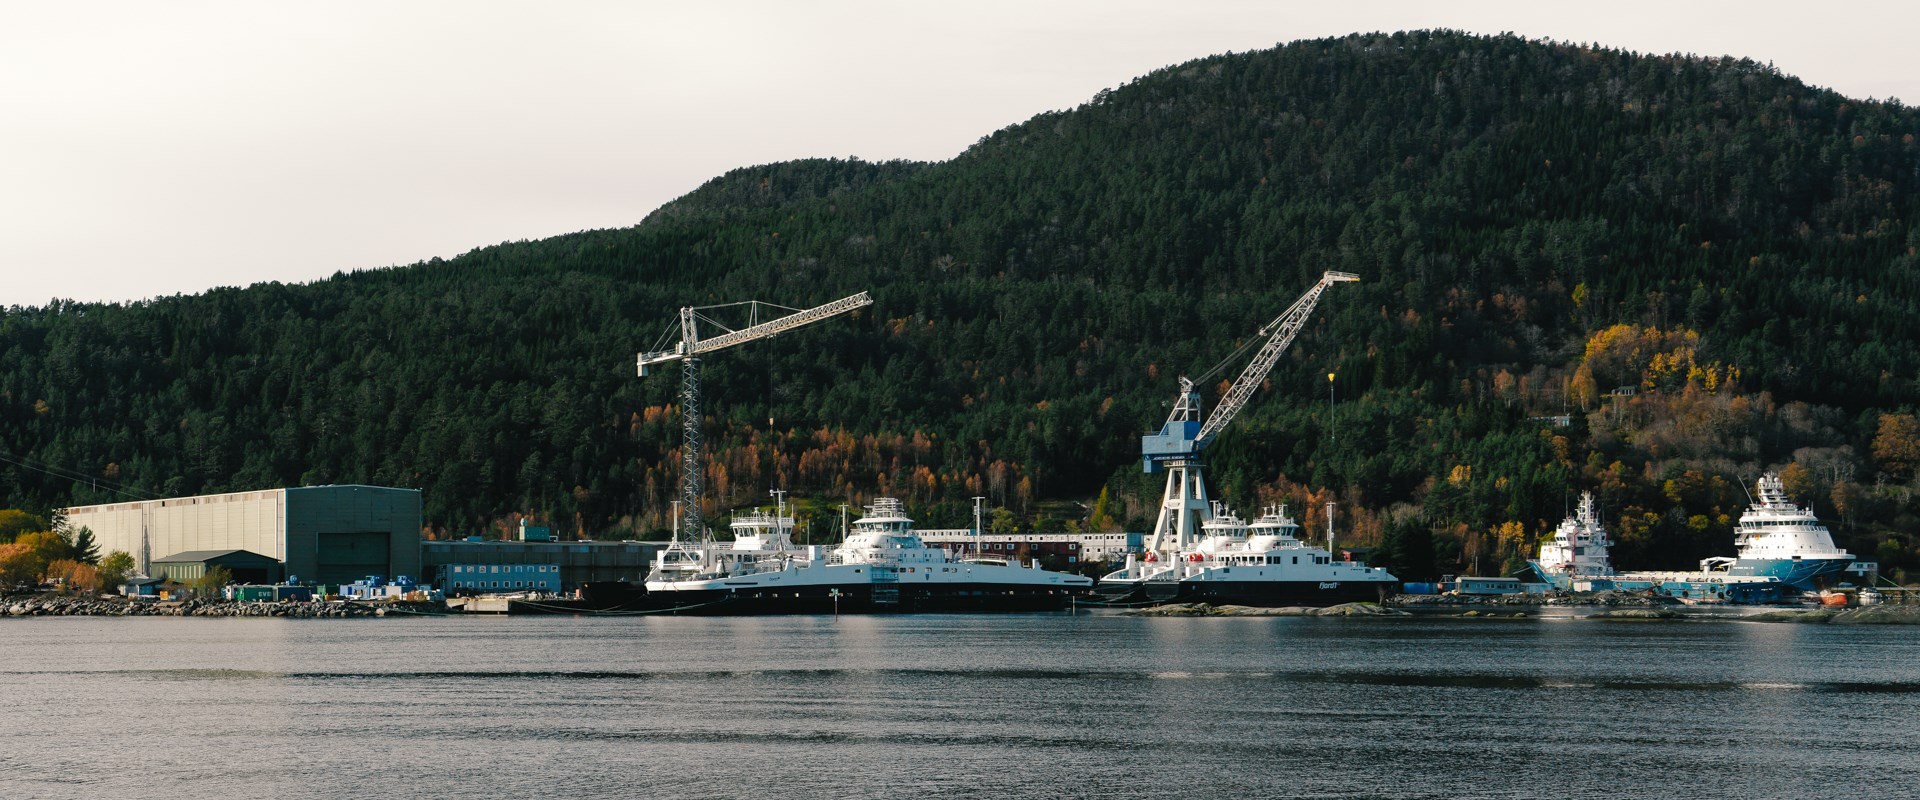 Havyard Ship Technology delivers vessels from own shipyard and support for the construction of Havyard design™ at shipyards worldwide.